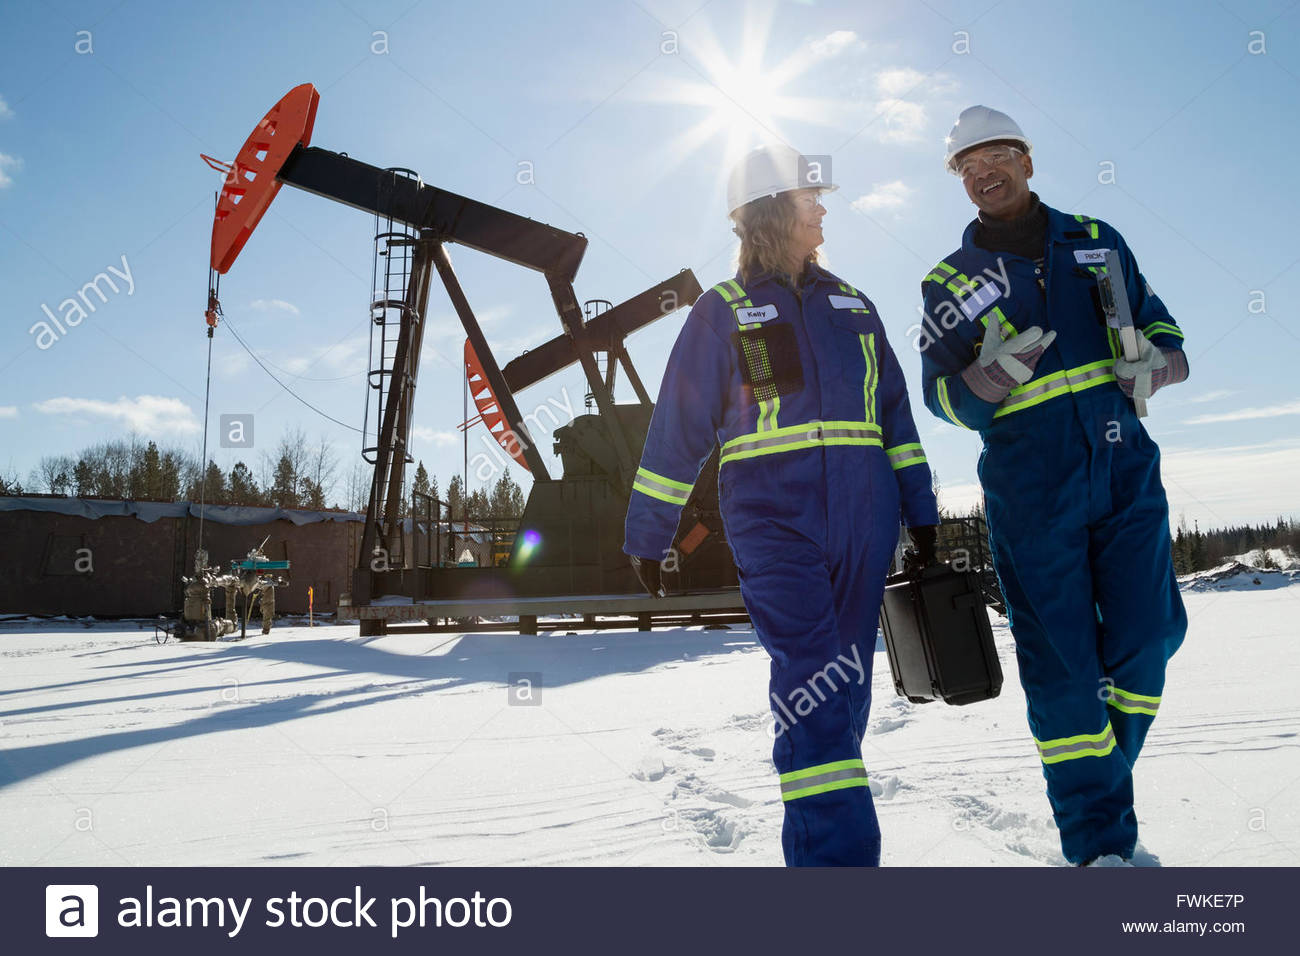 Workers walking away from drilling rigs in snow - Stock Image